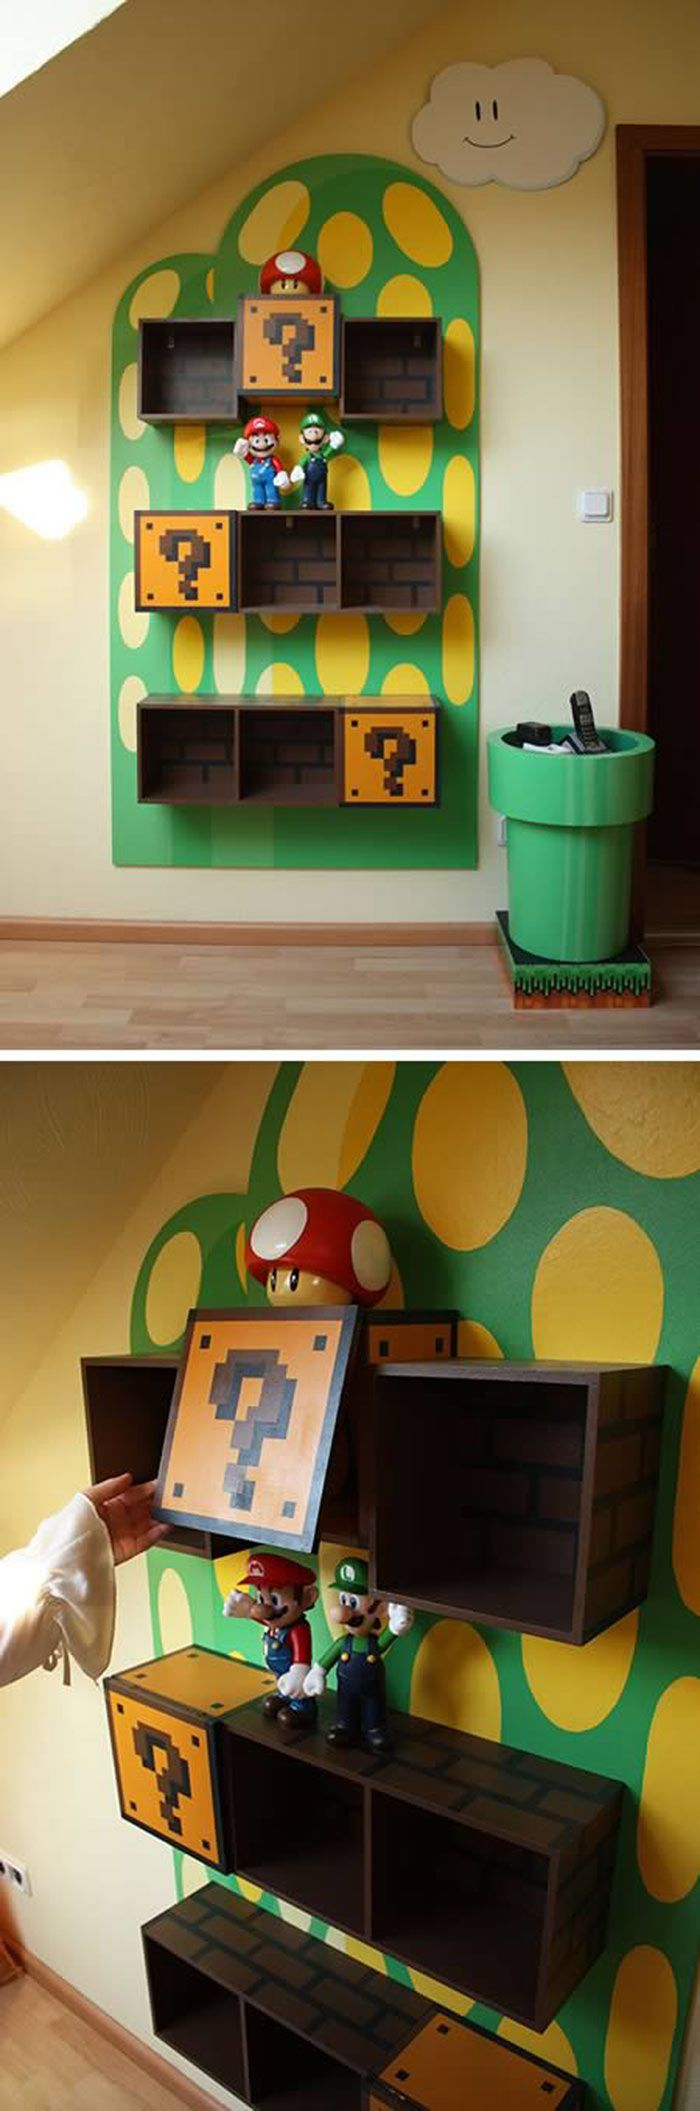 25 best ideas about nerd bedroom on pinterest theater for Geek bedroom ideas